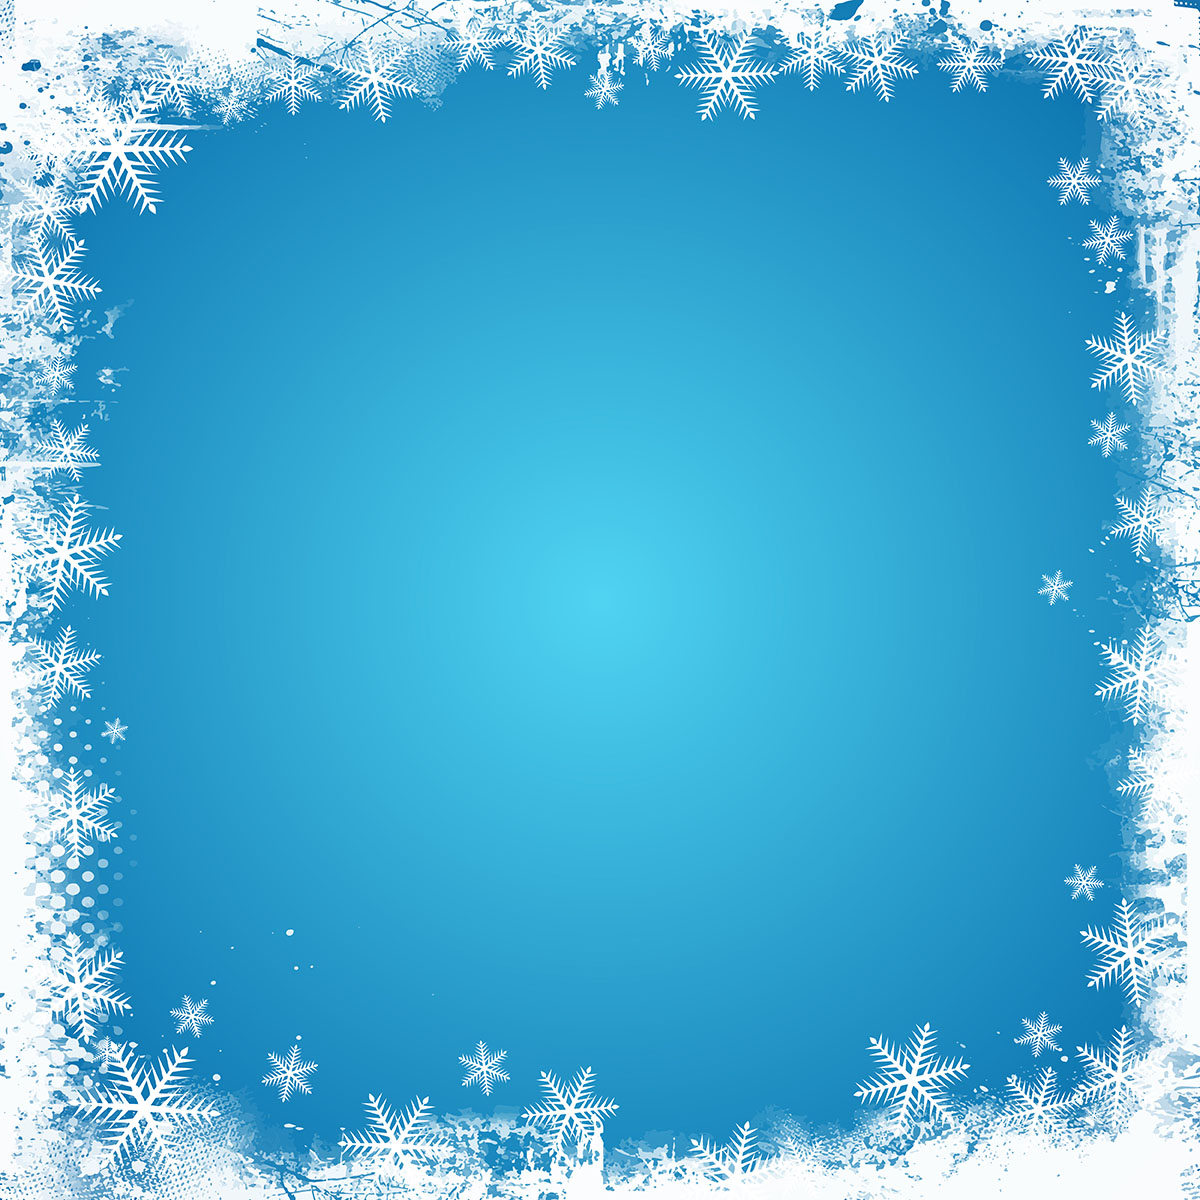 Winter Border Free Vector Art.